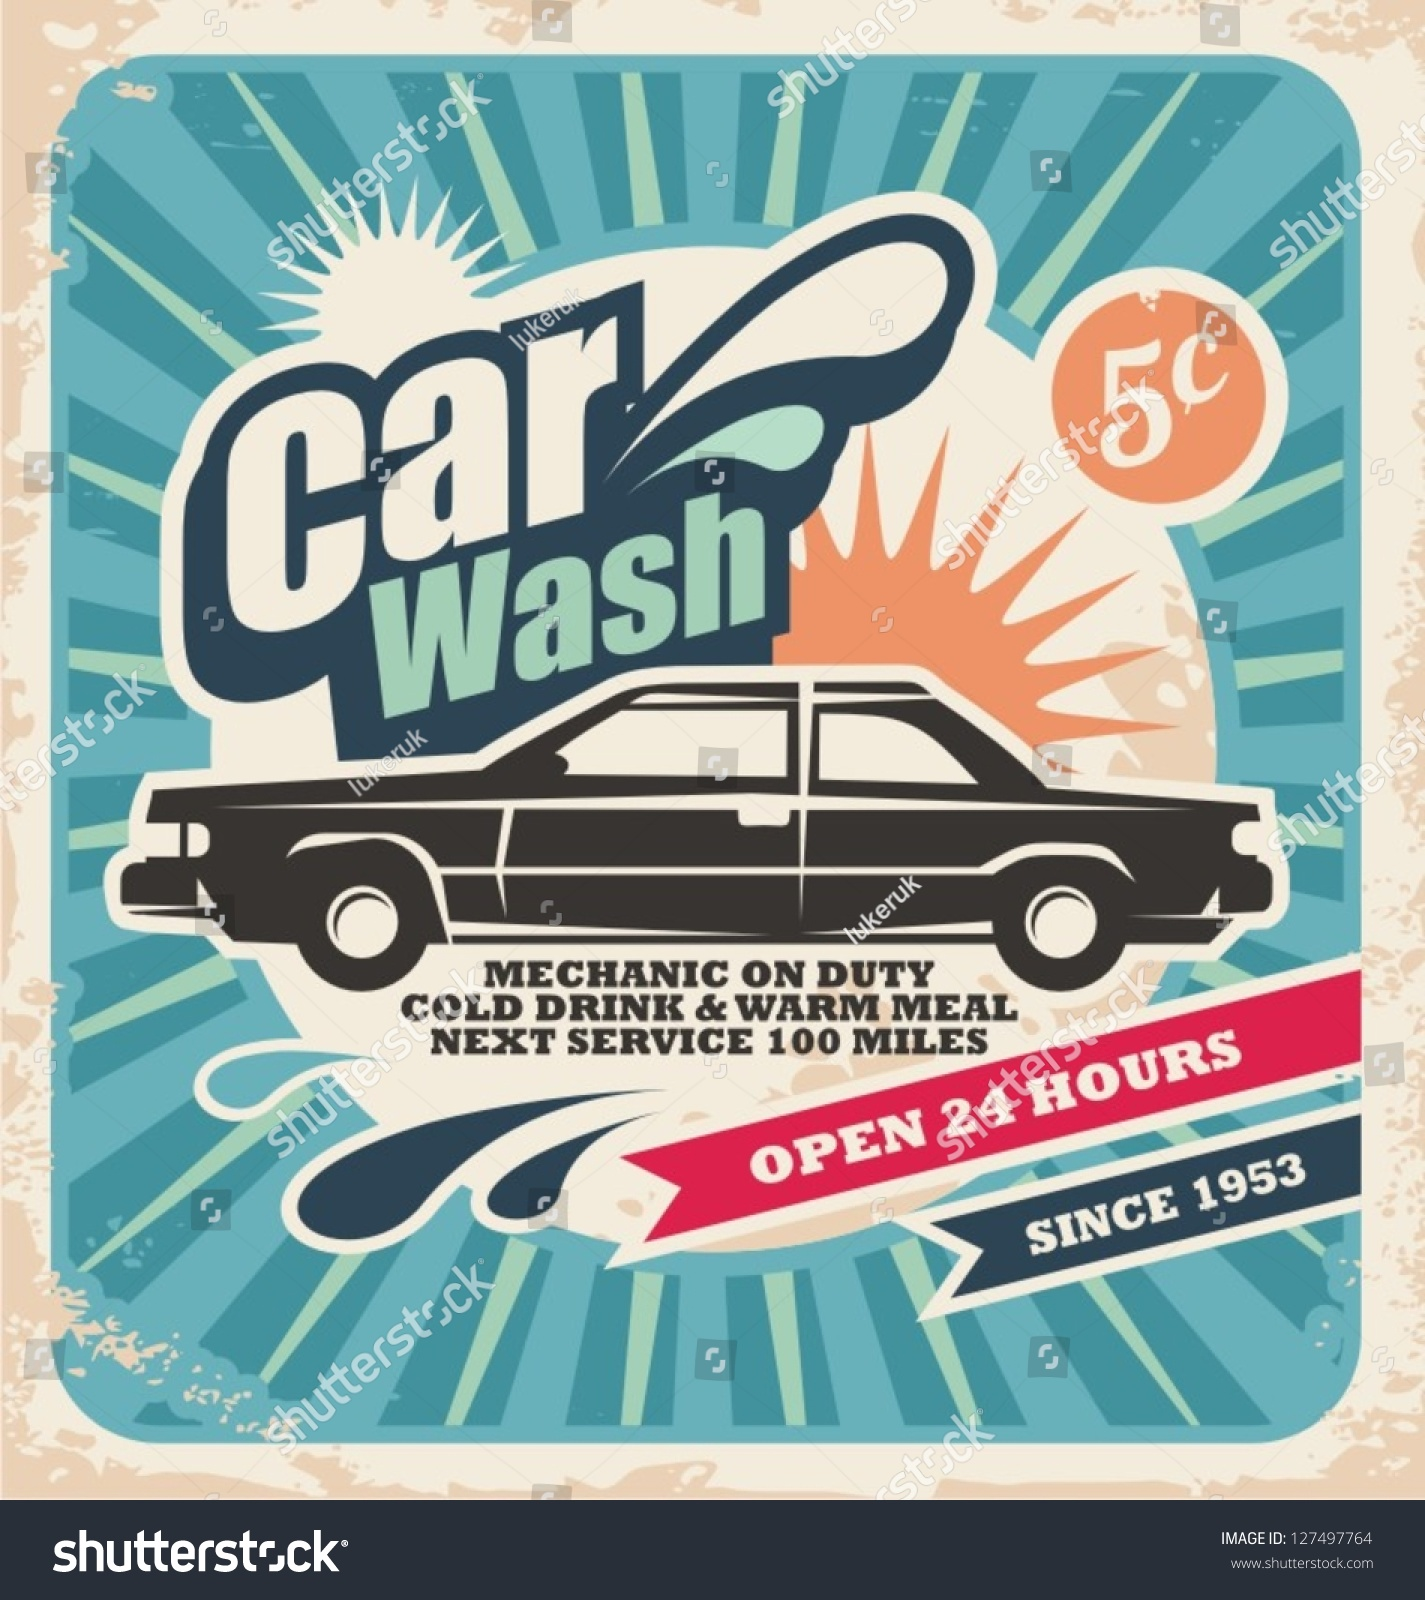 Royalty Free Vector Background With Vintage Car Wash